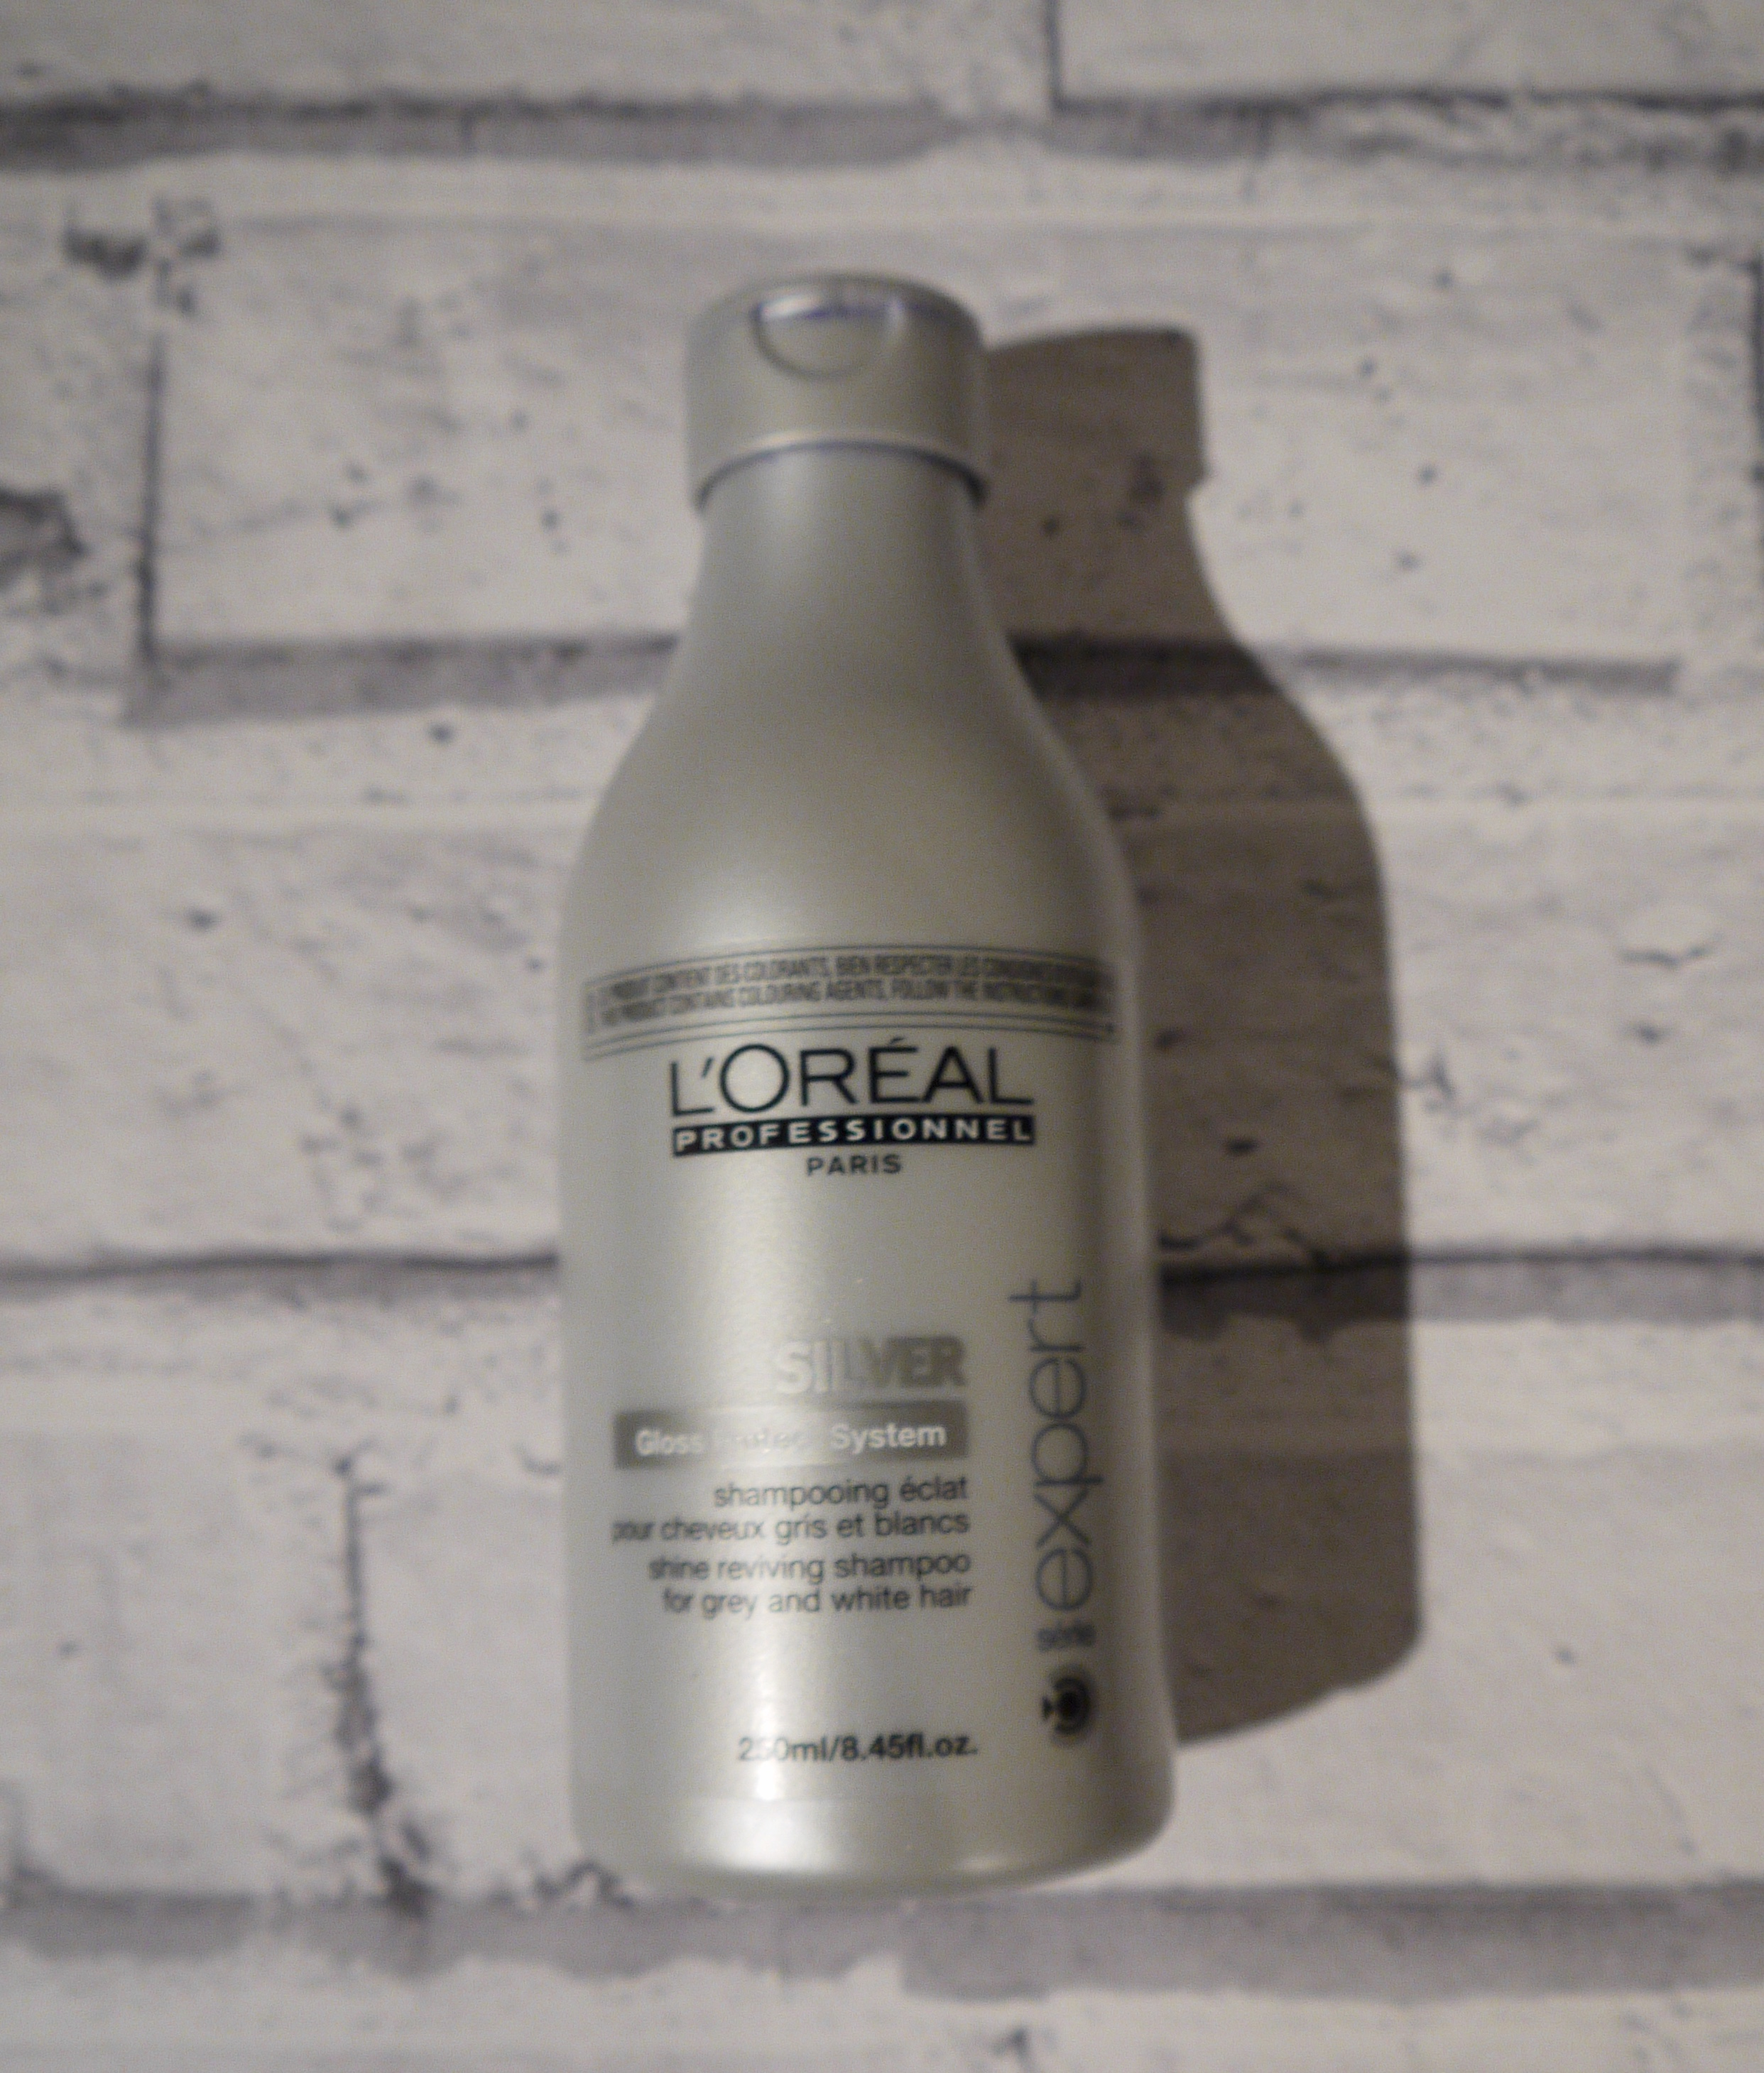 boreal silver shampoo, grey hair review